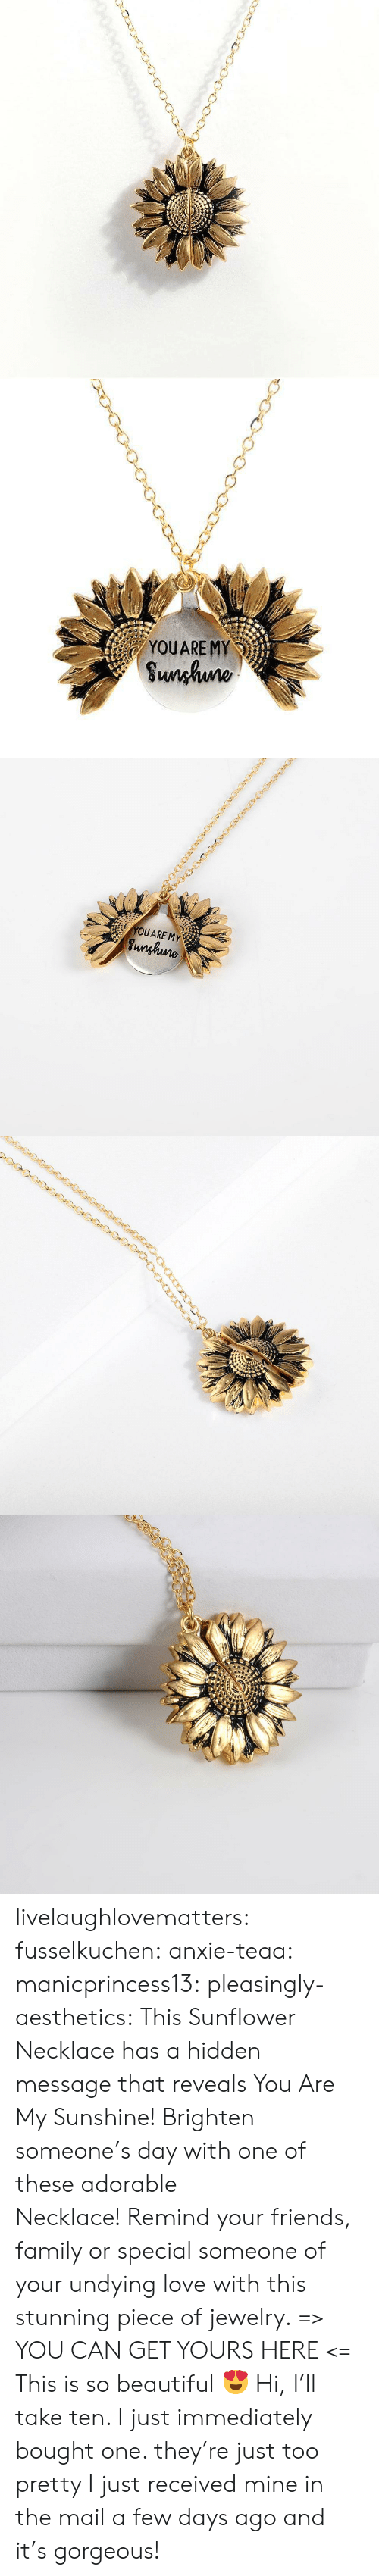 Beautiful, Family, and Friends: YOUARE MY  Sunhuno   YOUARE MY  Sunghune livelaughlovematters:  fusselkuchen: anxie-teaa:   manicprincess13:   pleasingly-aesthetics:  This Sunflower Necklace has a hidden message that reveals You Are My Sunshine! Brighten someone's day with one of these adorable Necklace!Remind your friends, family or special someone of your undying love with this stunning piece of jewelry. => YOU CAN GET YOURS HERE <=   This is so beautiful 😍    Hi, I'll take ten.    I just immediately bought one. they're just too pretty   I just received mine in the mail a few days ago and it's gorgeous!